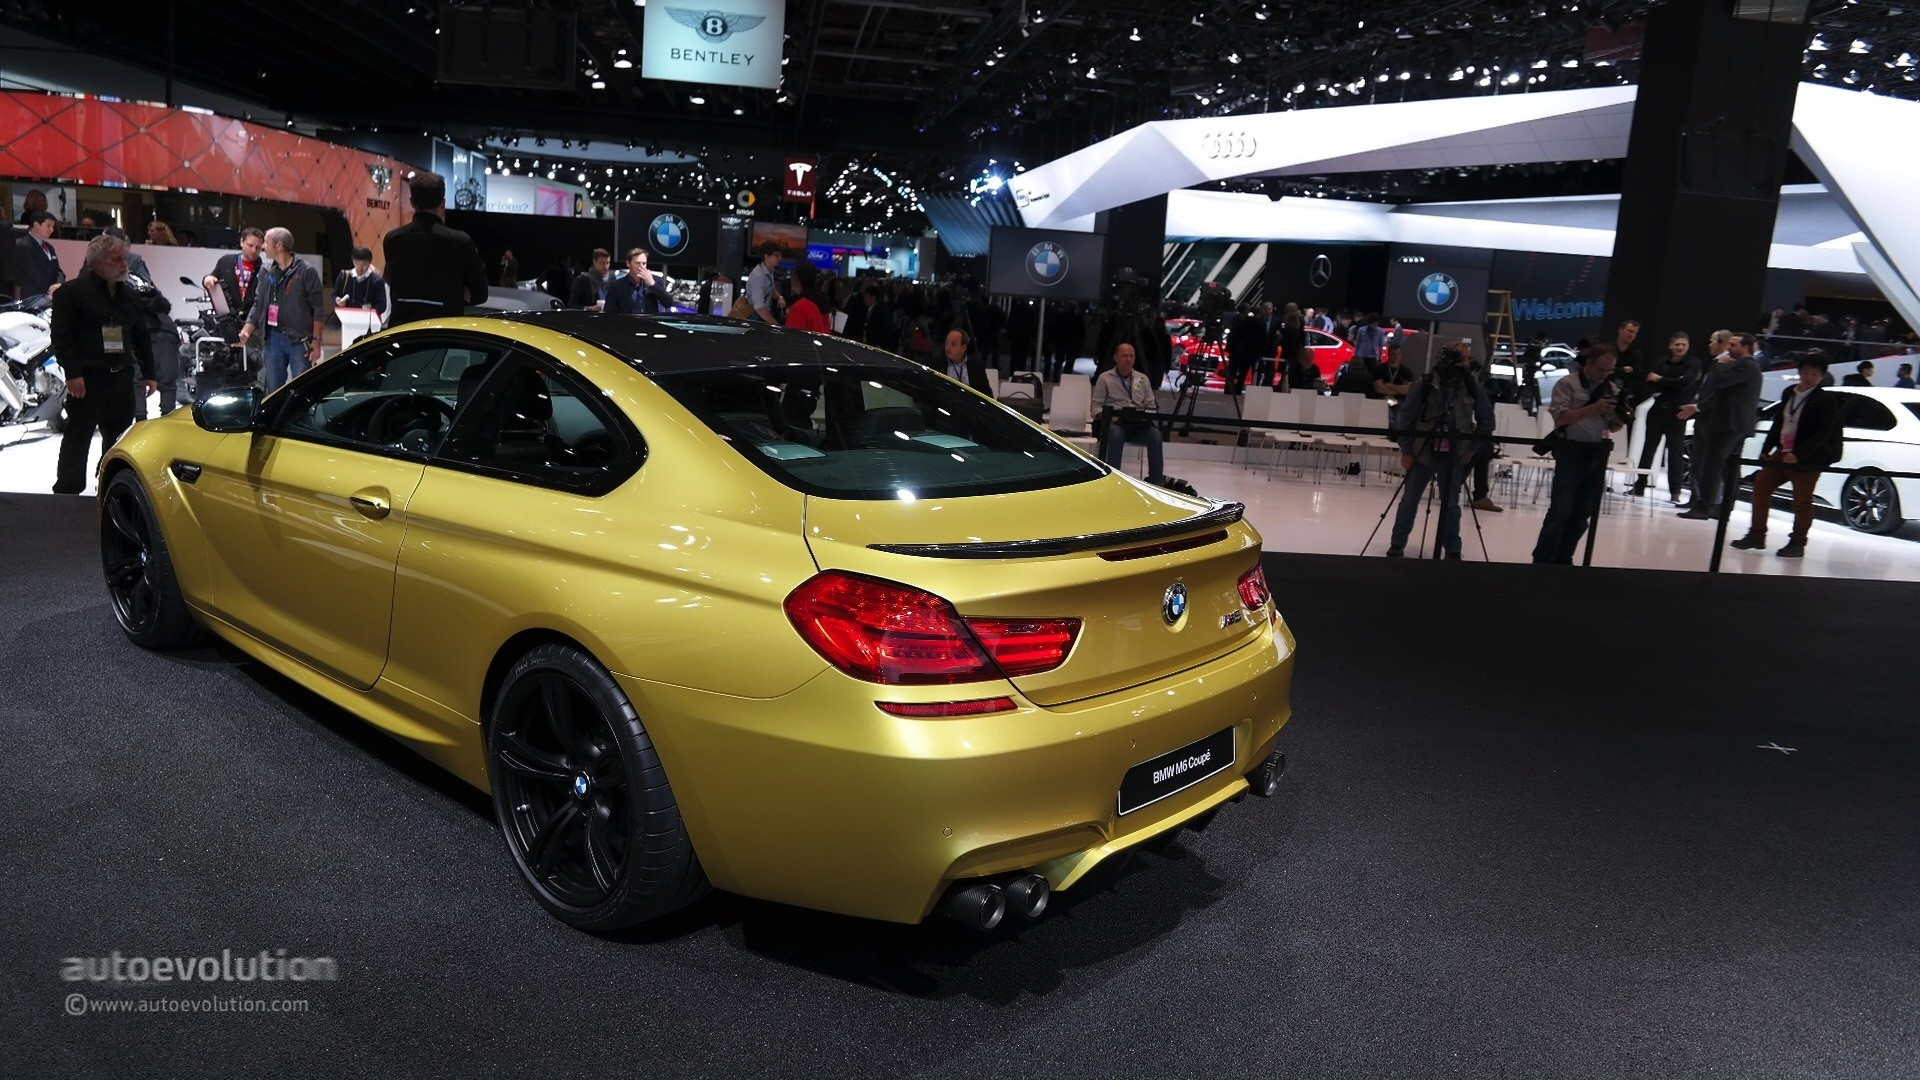 World Debut For 2015 Bmw M6 Lci In Austin Yellow At The Detroit Auto Show Live Photos